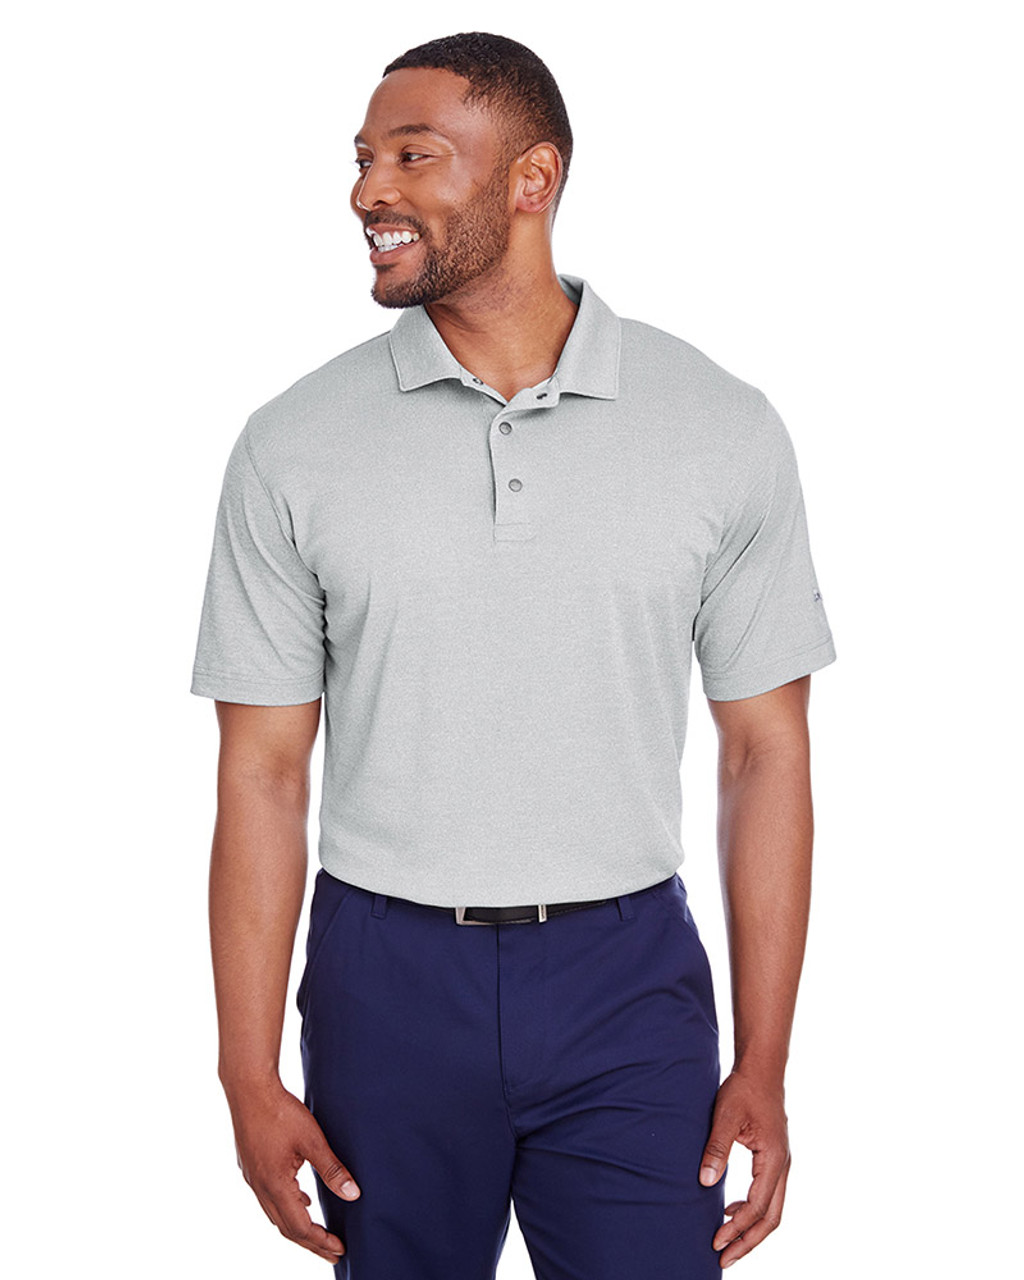 Quarry Heather - 597220 Puma Golf Men's Grill-To-Green Polo | Blankclothing.ca